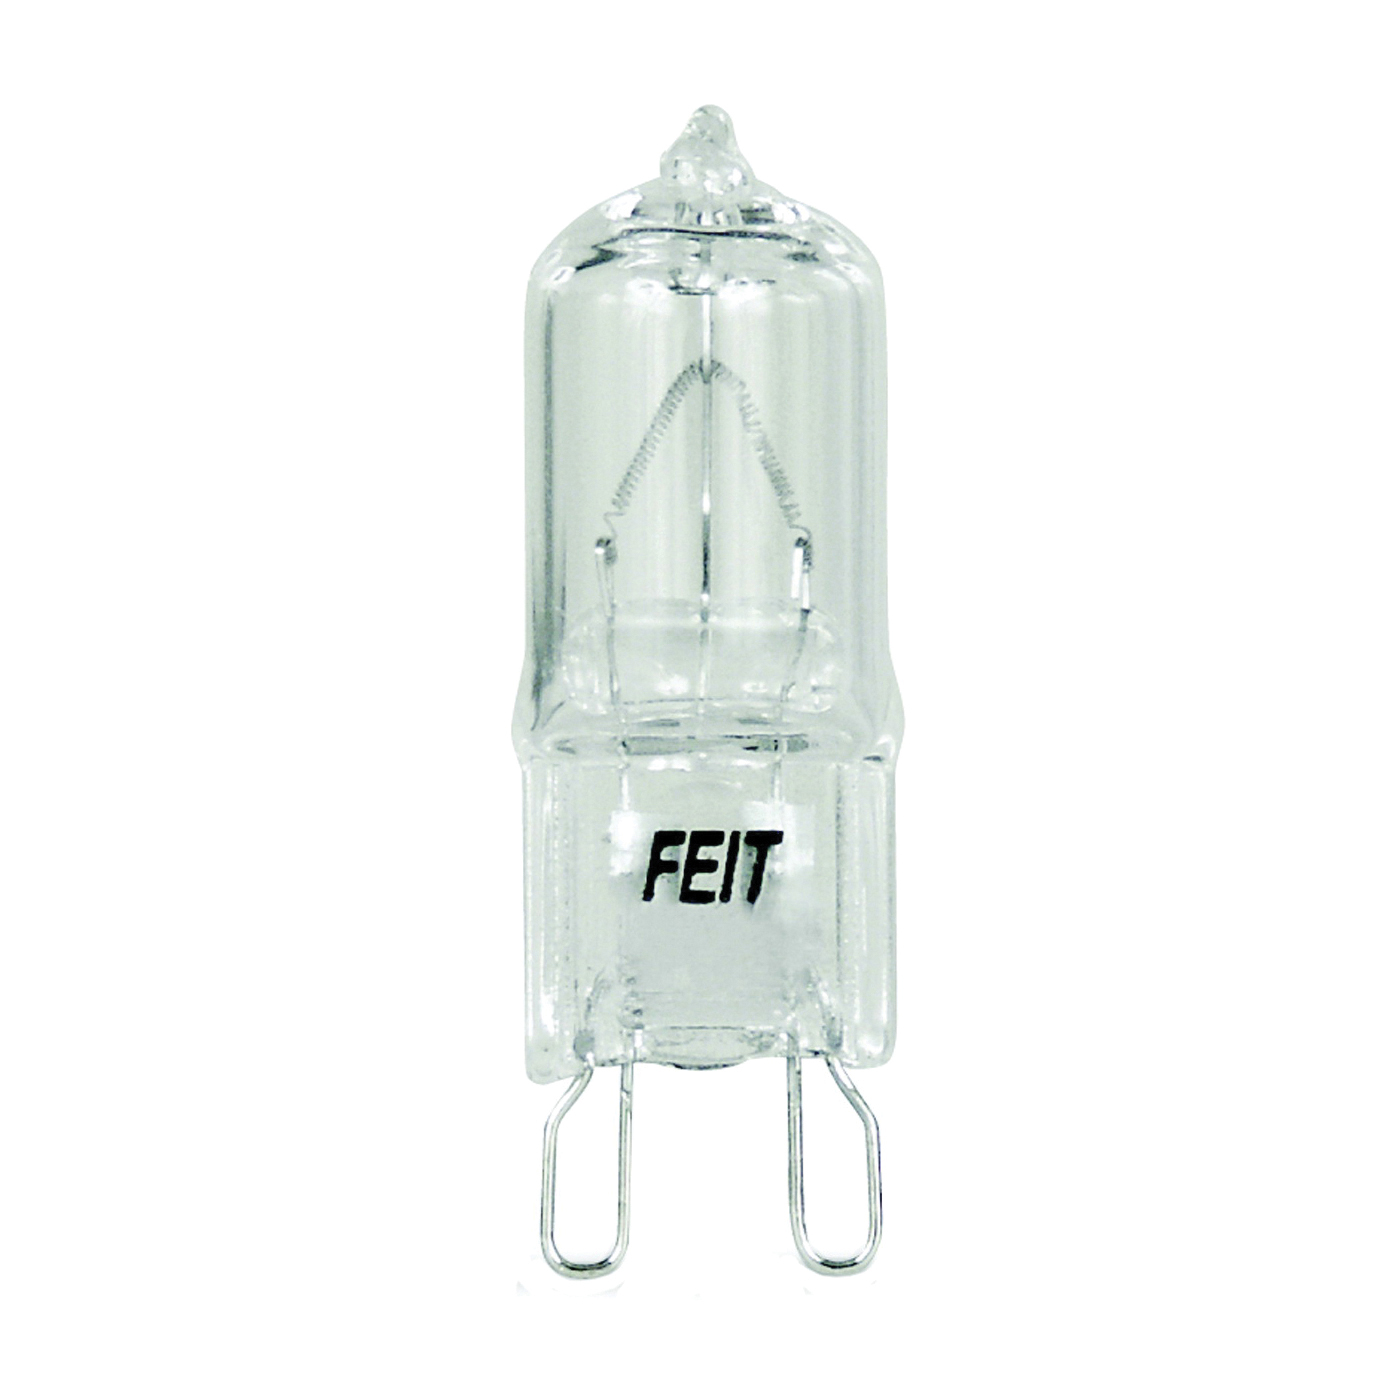 Picture of Feit Electric BPQ60/G9 Halogen Lamp, 60 W, G9 Lamp Base, JCD T4 Lamp, 3000 K Color Temp, 2000 hr Average Life